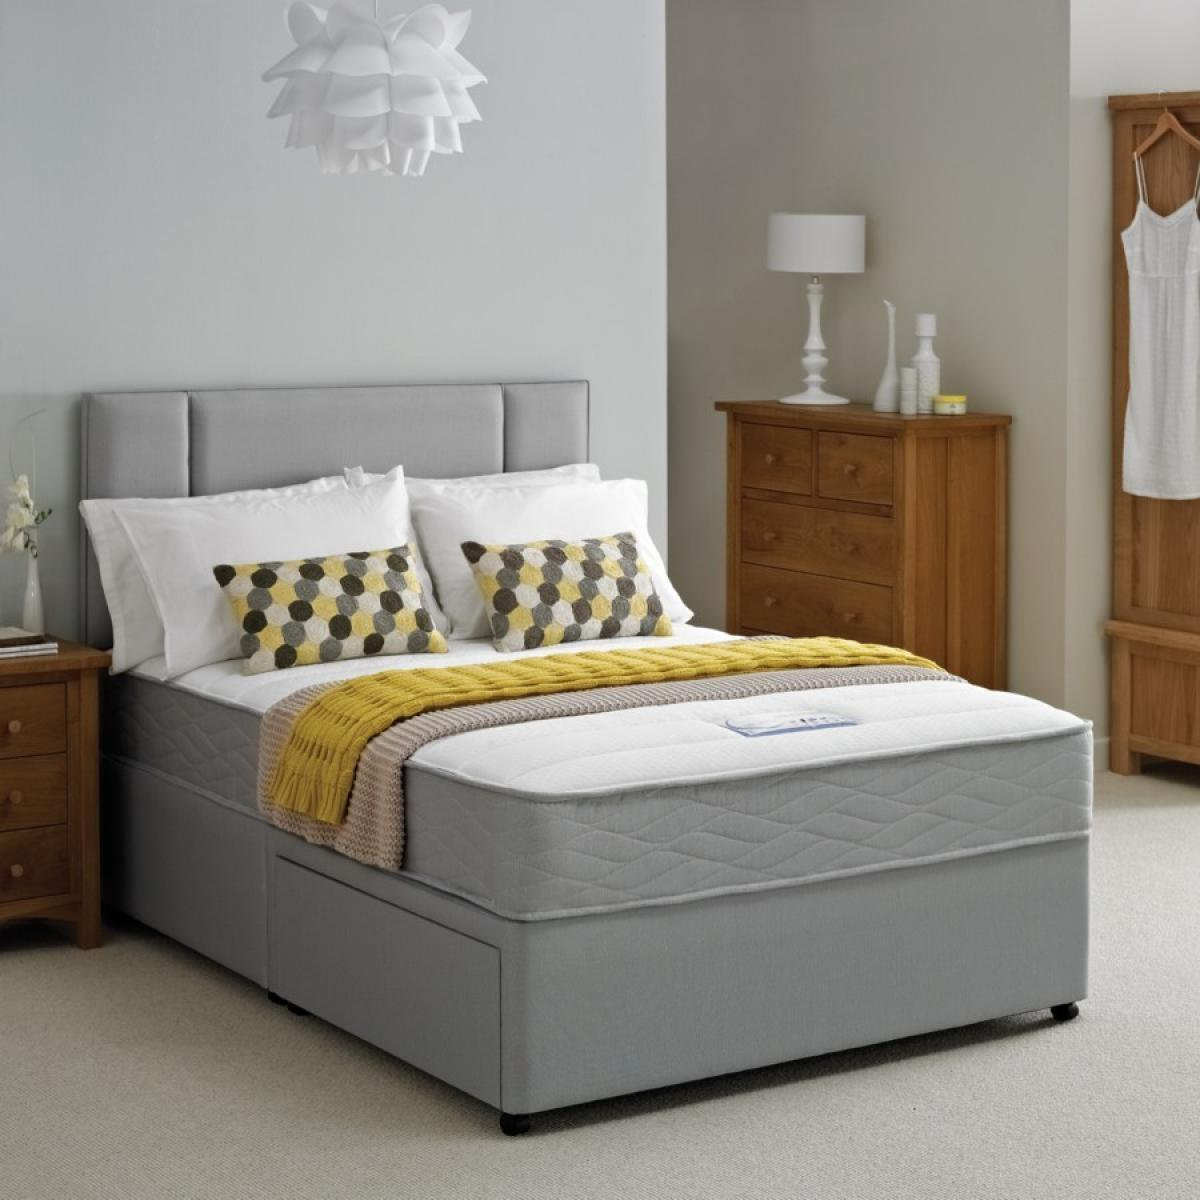 How to choose small double bed for small bedroom for Compact beds